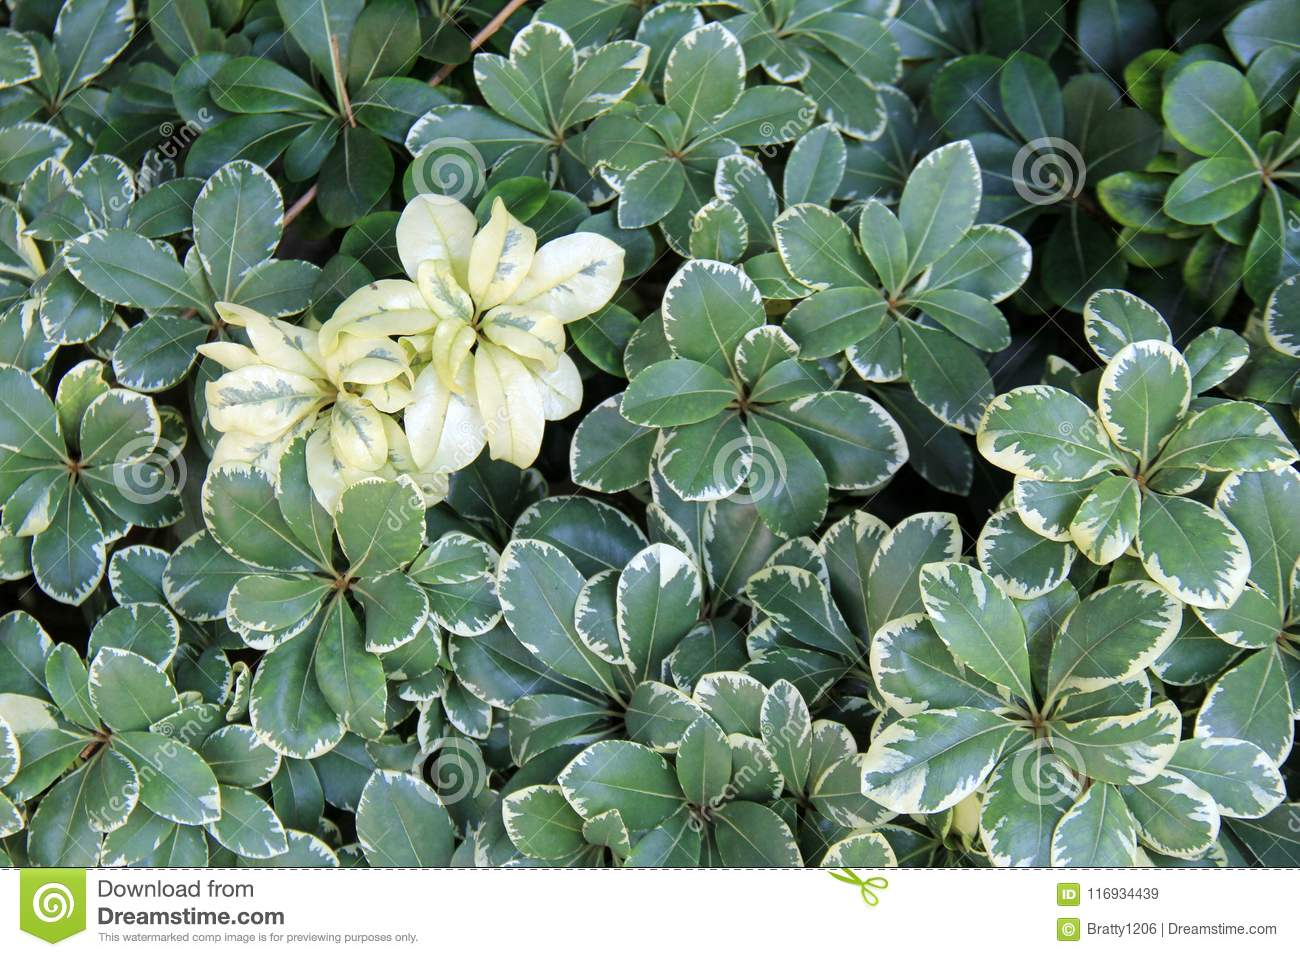 Pretty Leaves Of Ground Cover Plants With Greens And Whites For Added Color Stock Image Image Of Season Scene 116934439